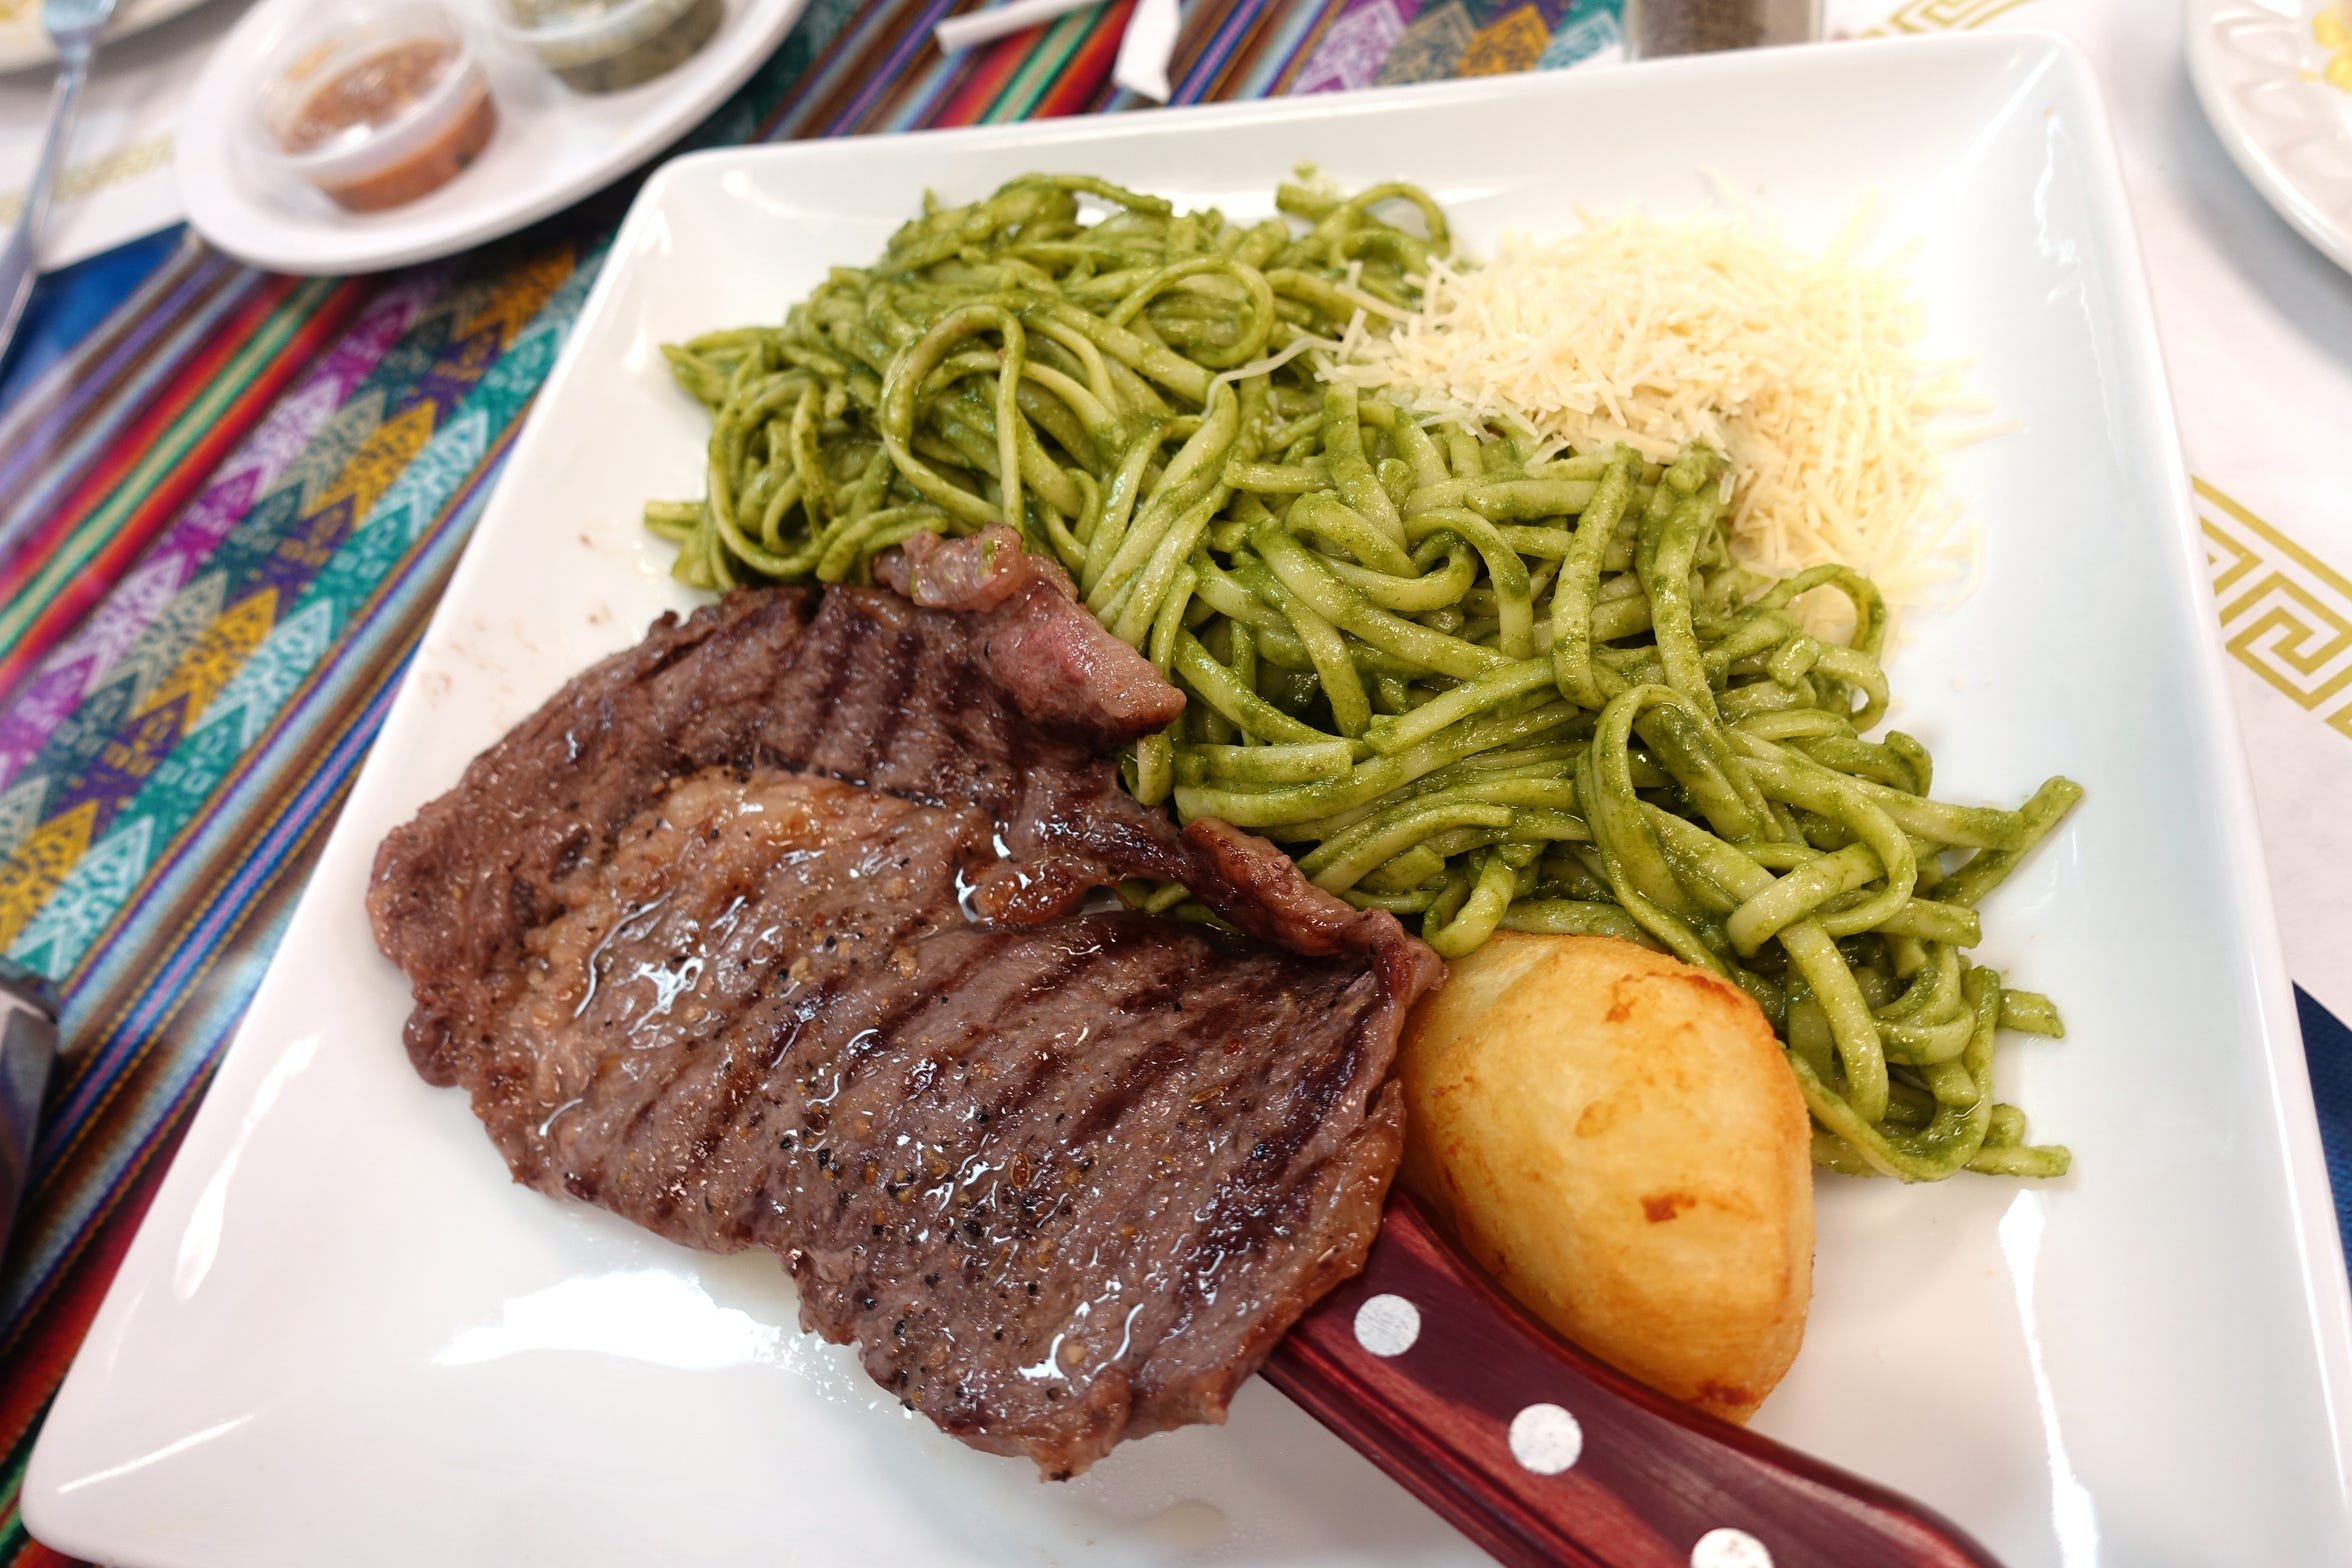 Tallarines Verdes con Bisteck, linguine with pesto and grilled beef loin, at Los Andes Peruvian Cuisine in Phoenix.